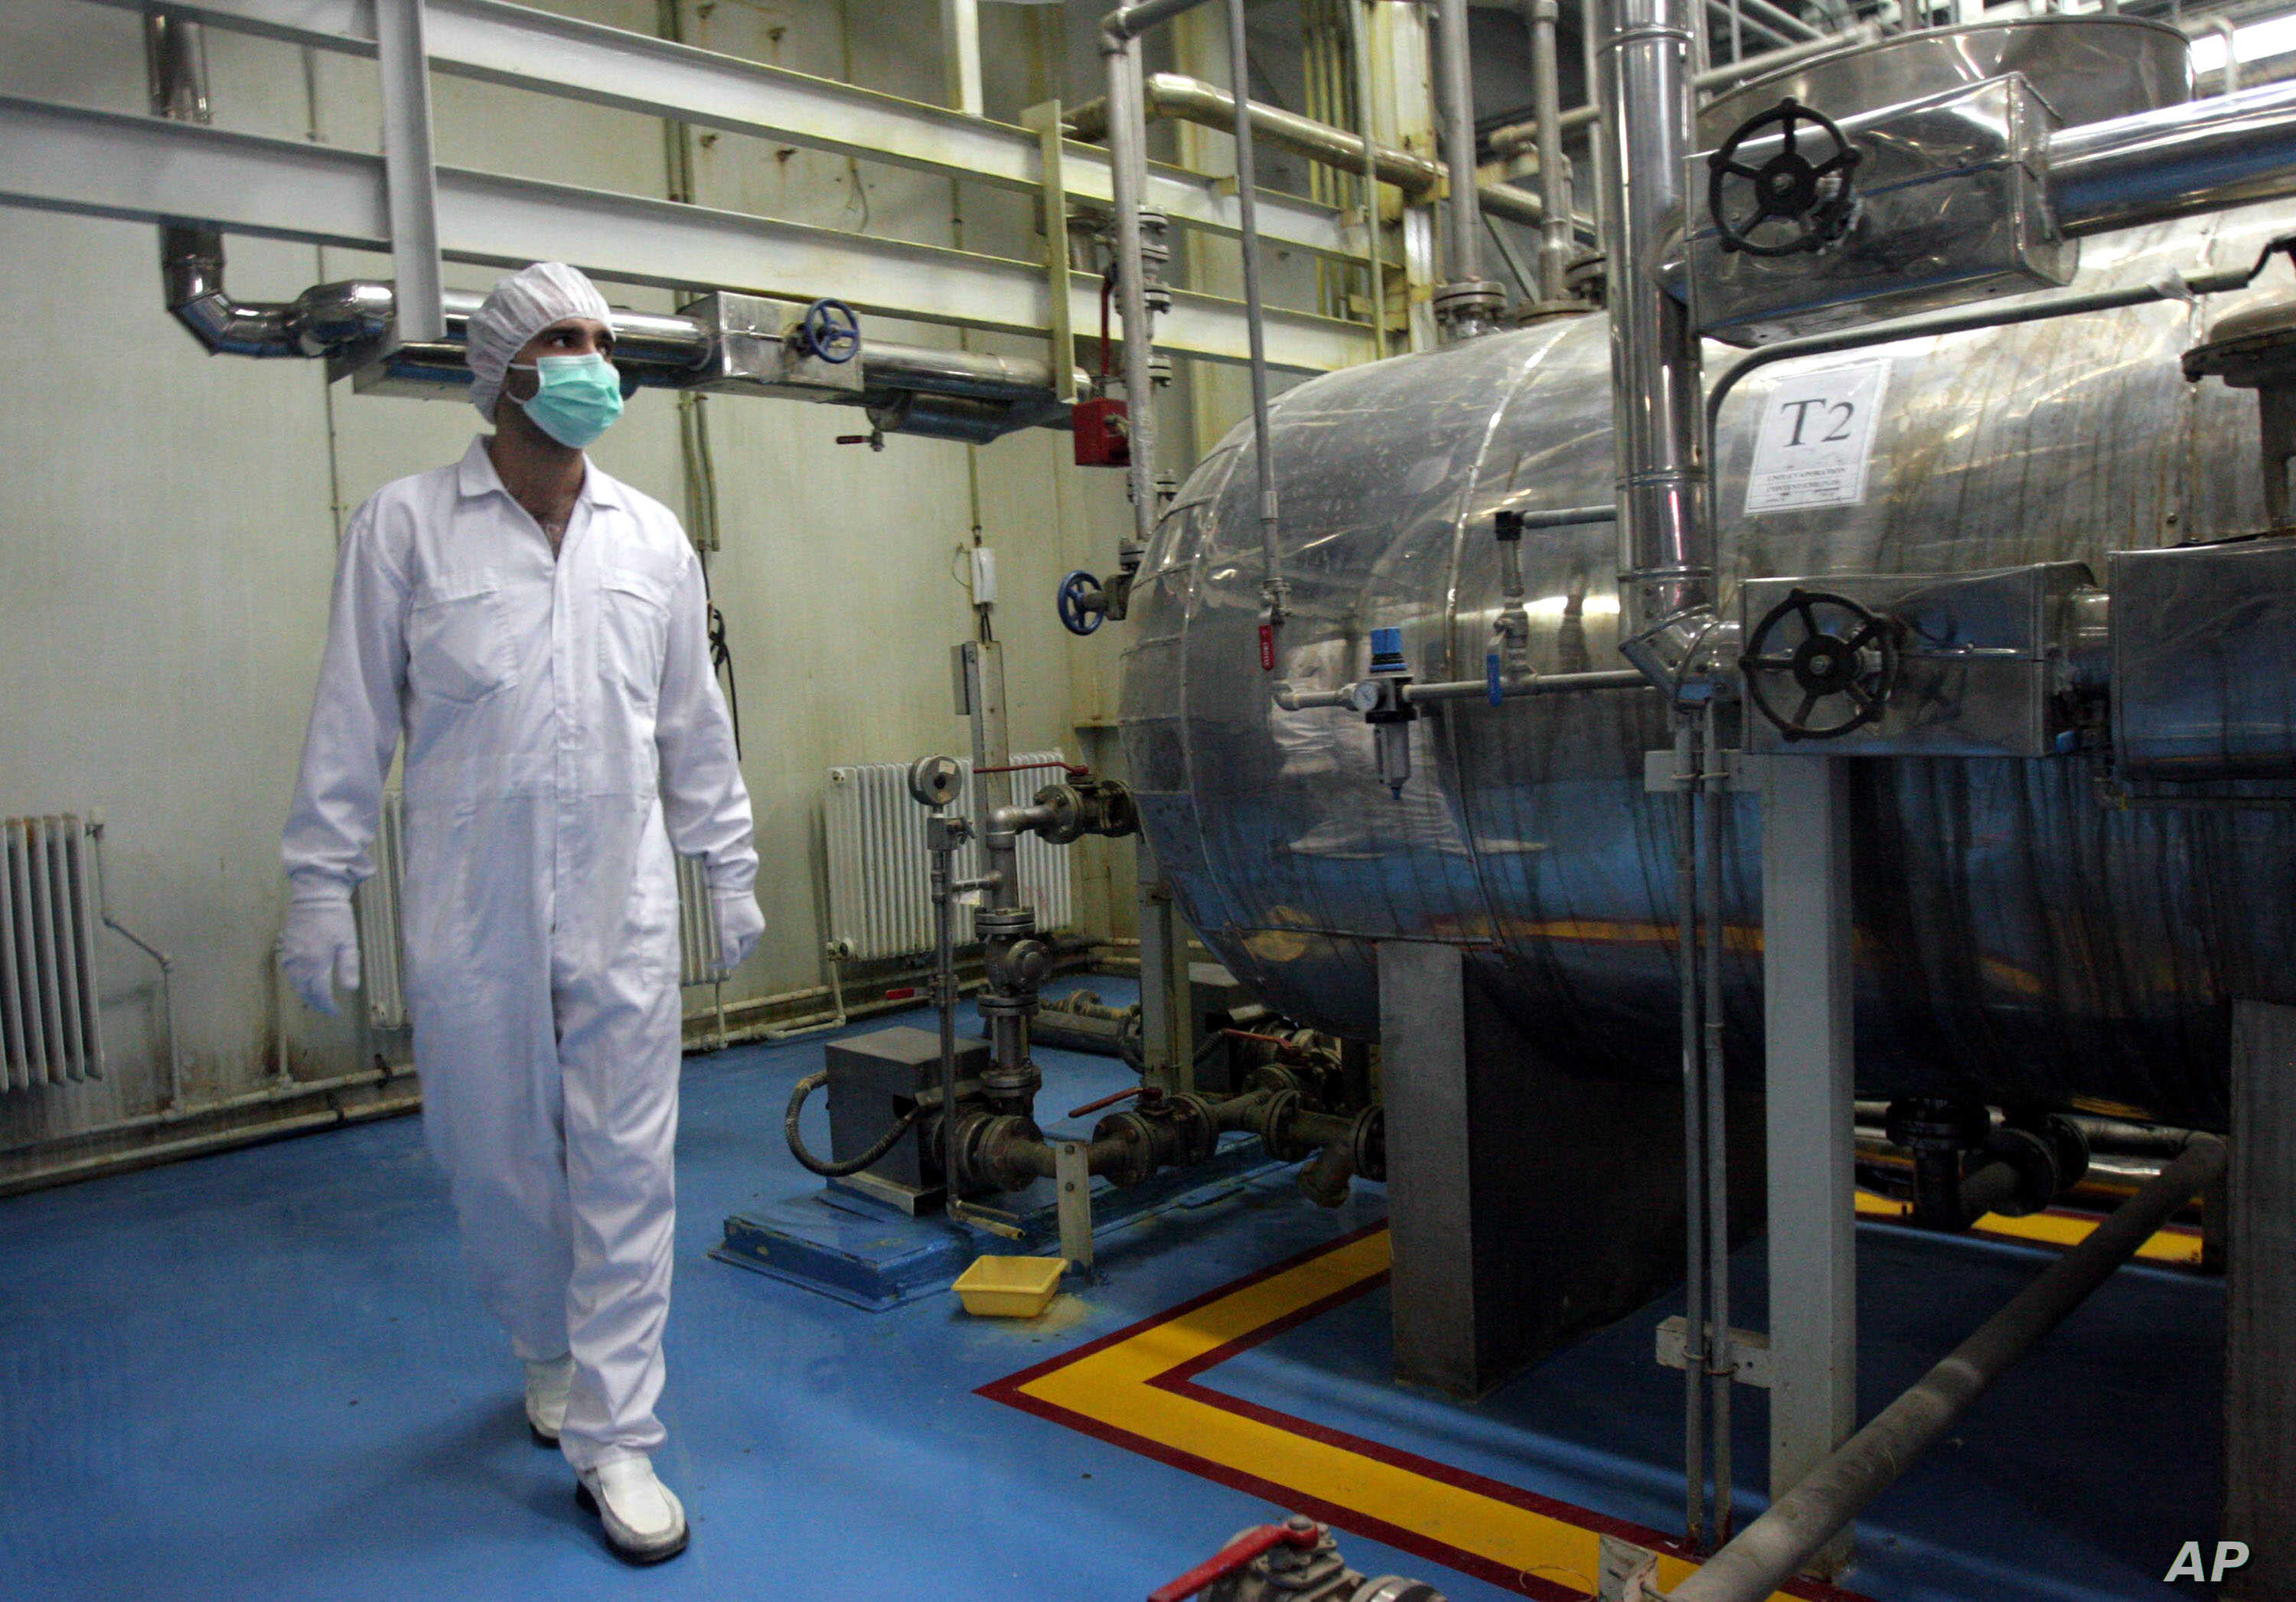 FILE - An Iranian technician walks through the Uranium Conversion Facility just outside the city of Isfahan, south of the capital Tehran.